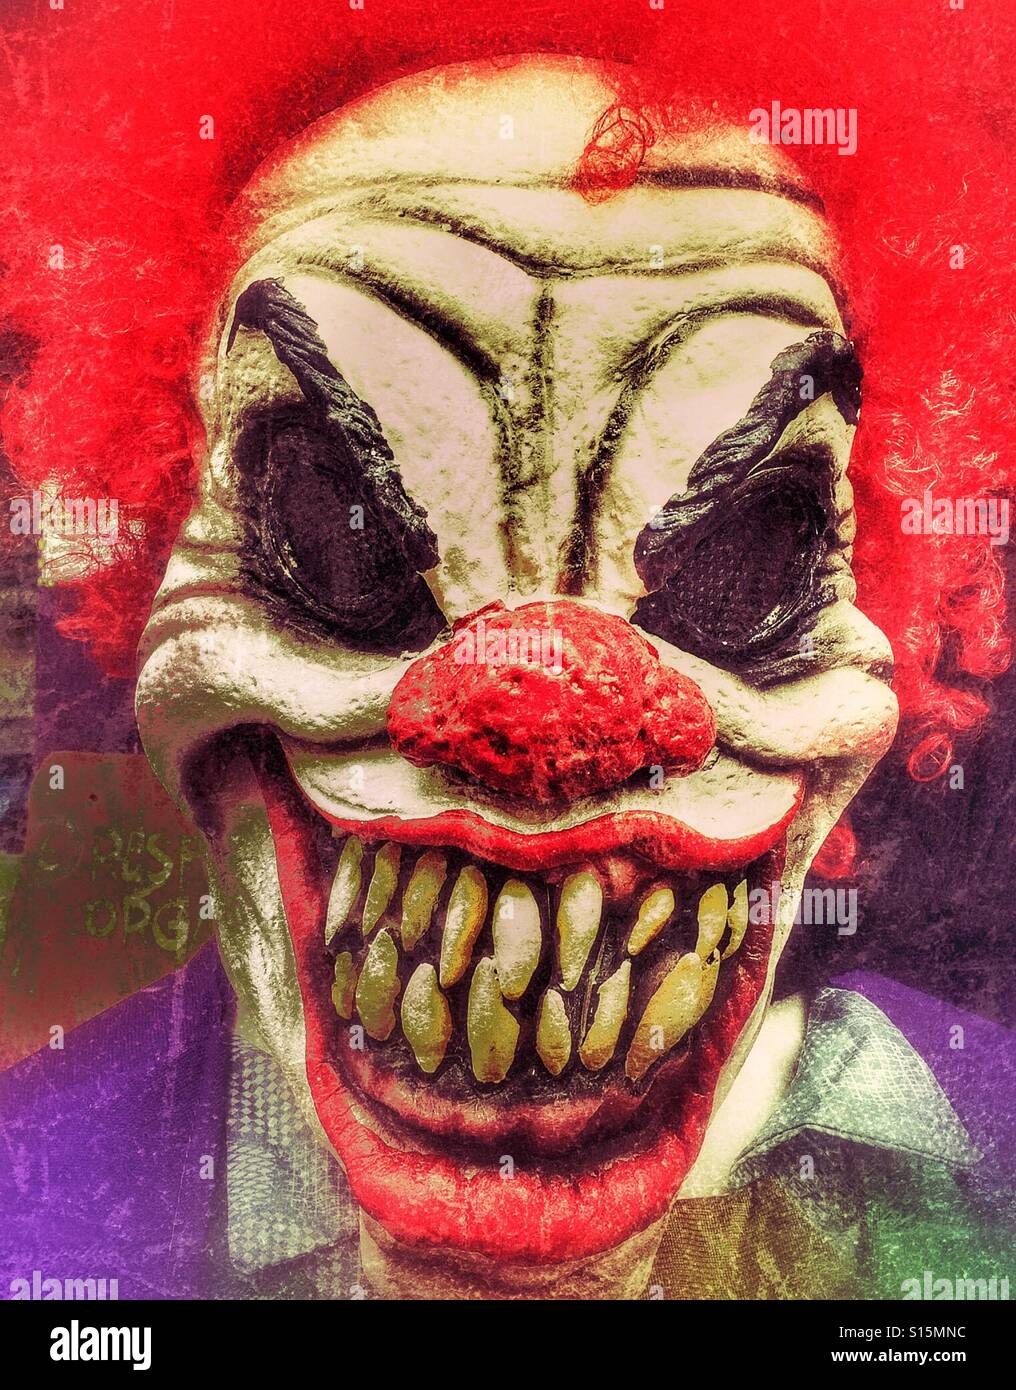 scary clowns stock photos scary clowns stock images alamy